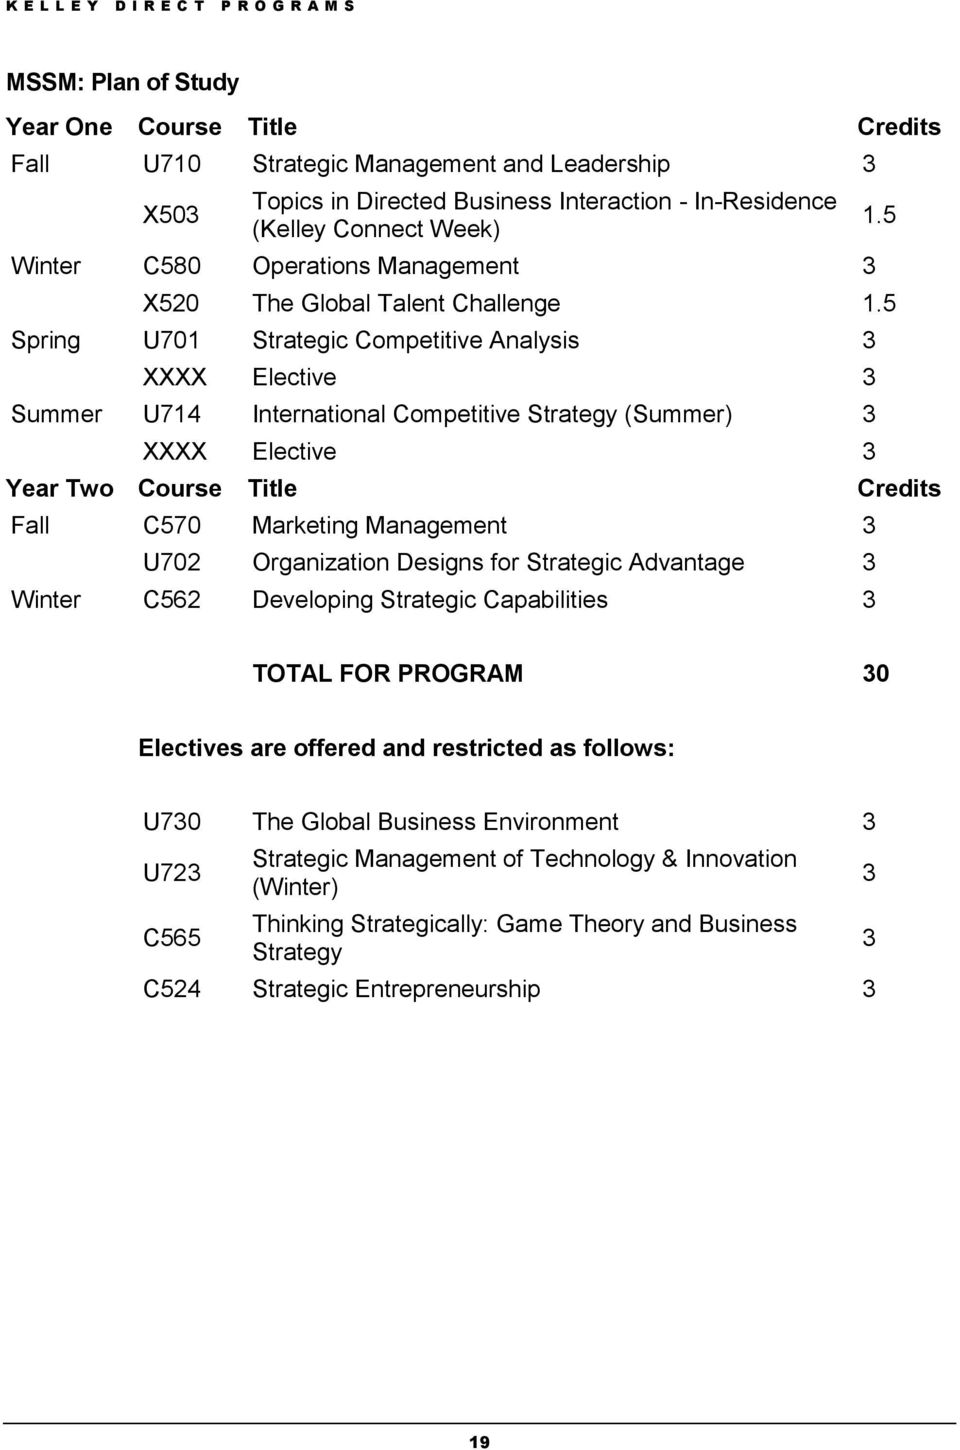 5 Spring U701 Strategic Competitive Analysis 3 XXXX Elective 3 Summer U714 International Competitive Strategy (Summer) 3 XXXX Elective 3 Year Two Course Title Credits Fall C570 Marketing Management 3